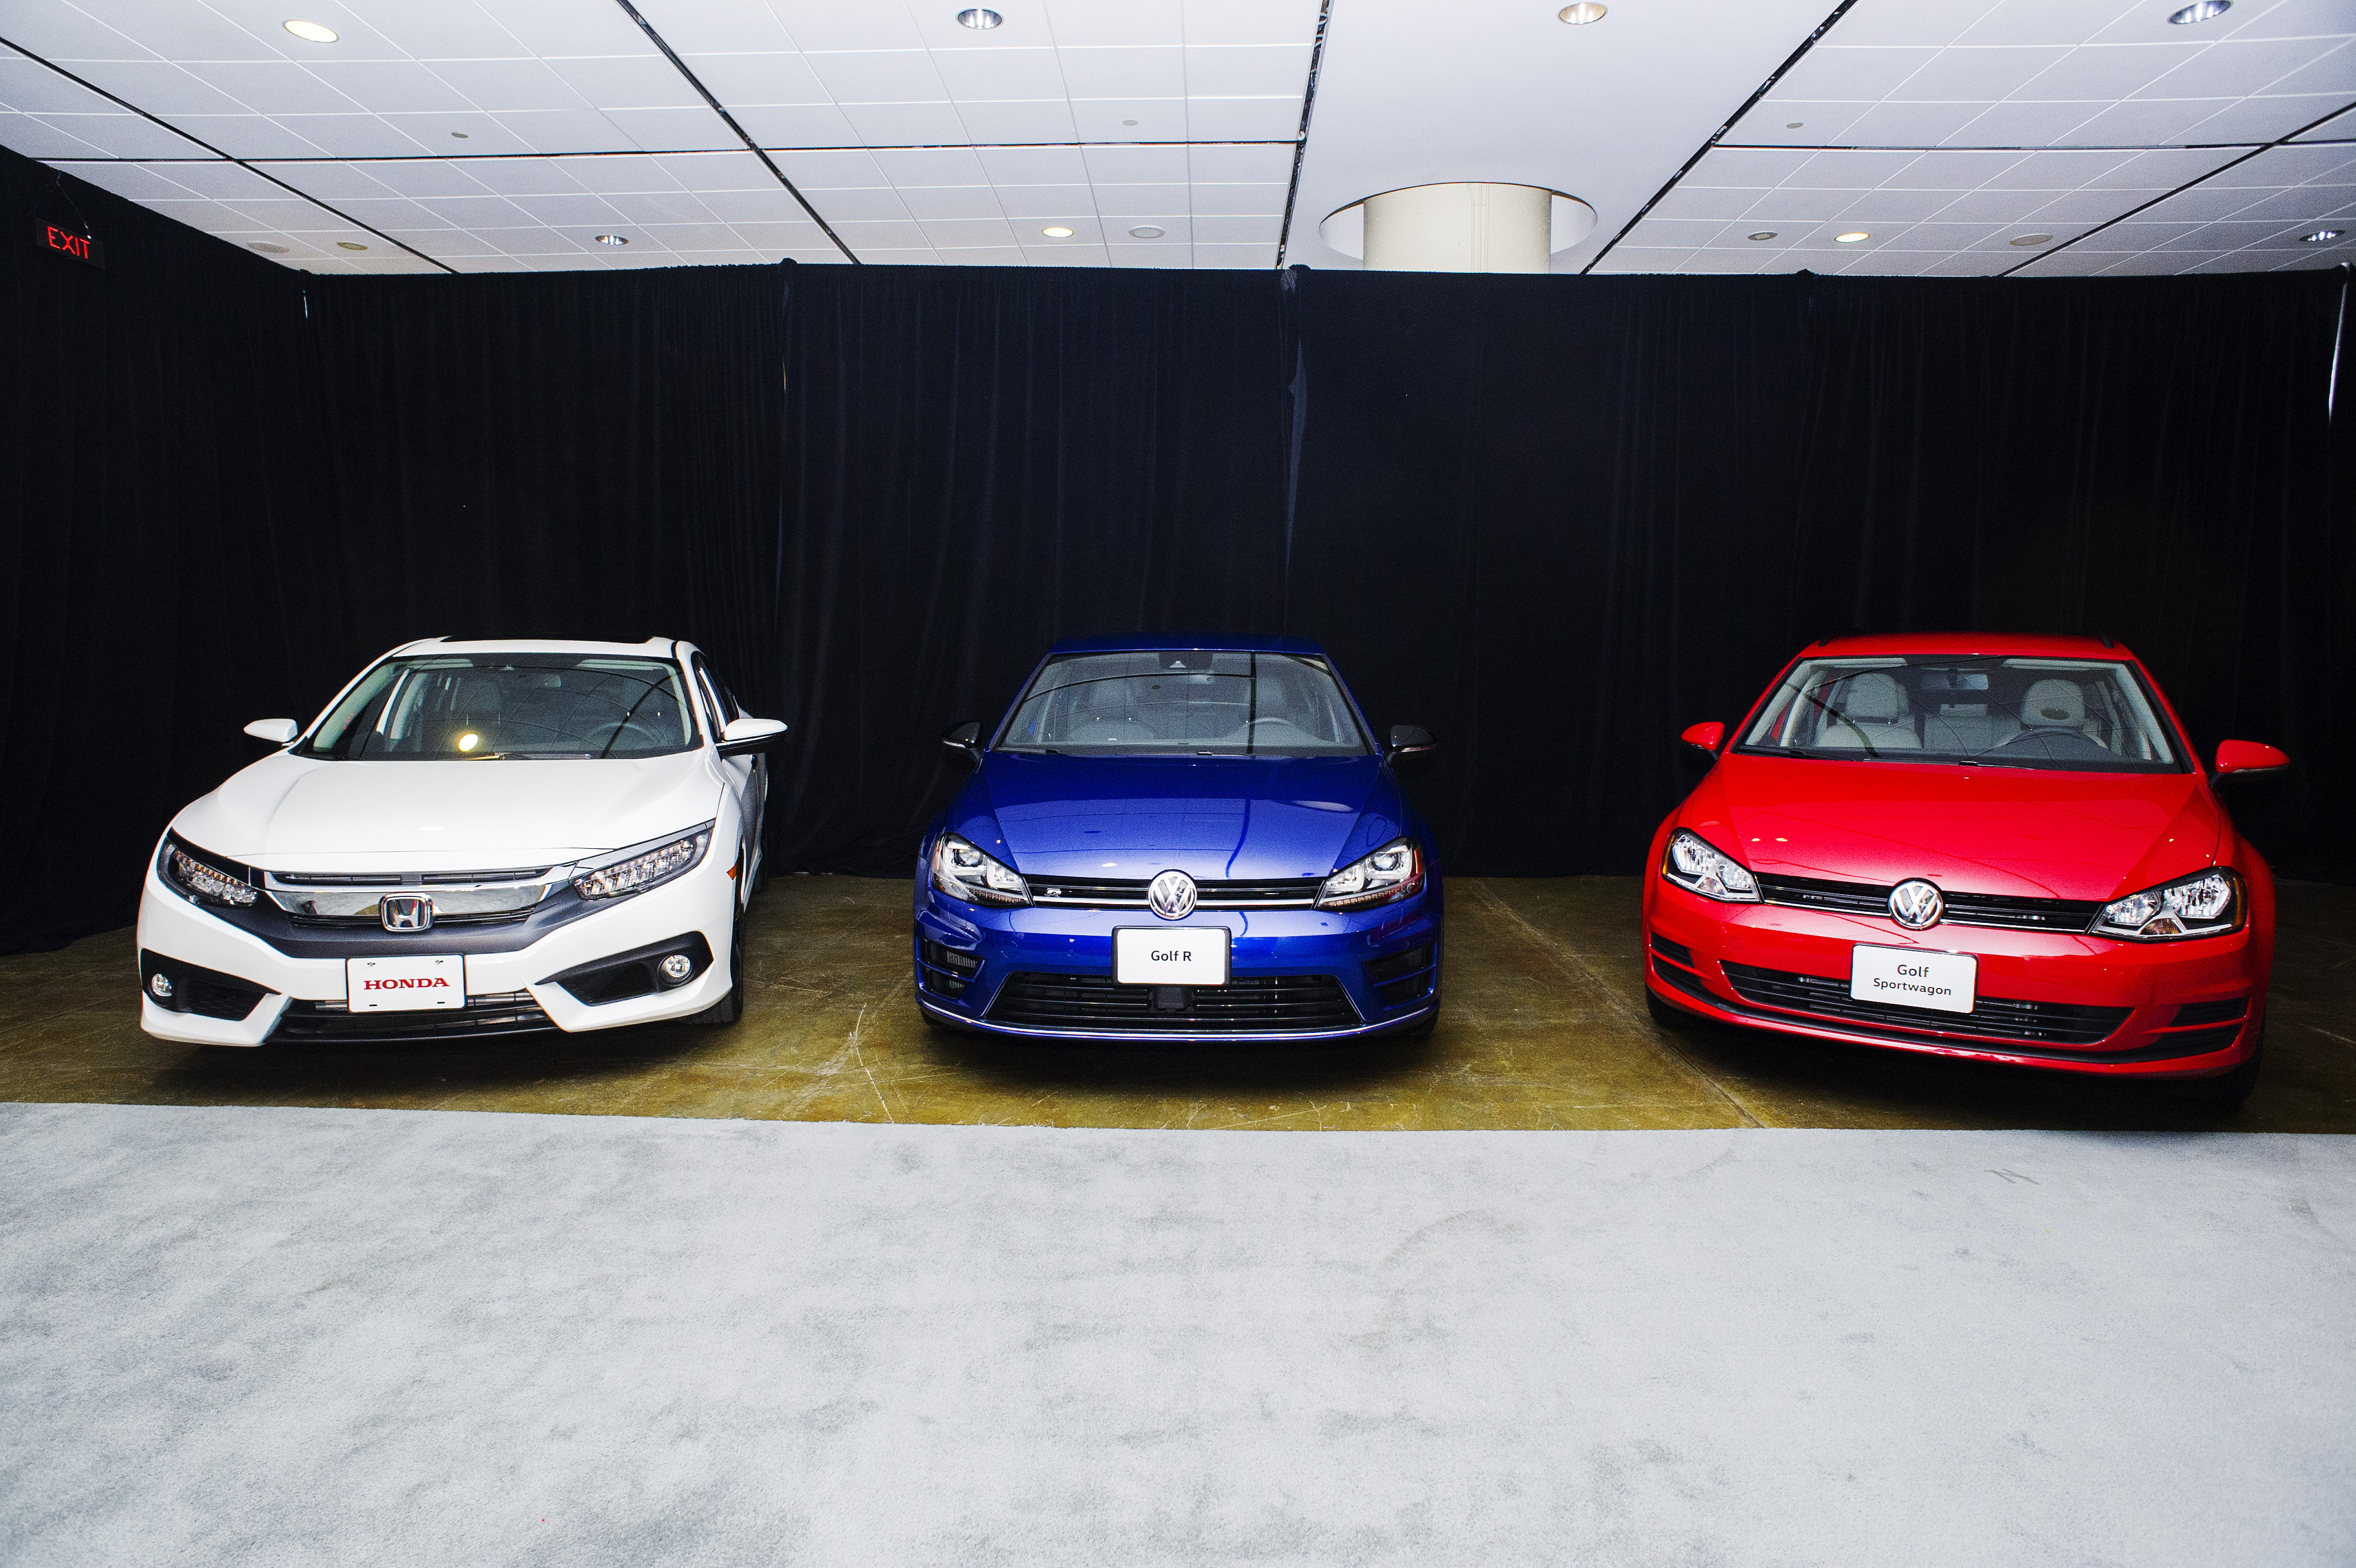 Finalists for the 2016 Canadian Car of the Year title (L to R) Honda Civic, Volkswagen, Golf R Volkswagen and Golf Sportwagon.   (Photos By: Michelle Siu)